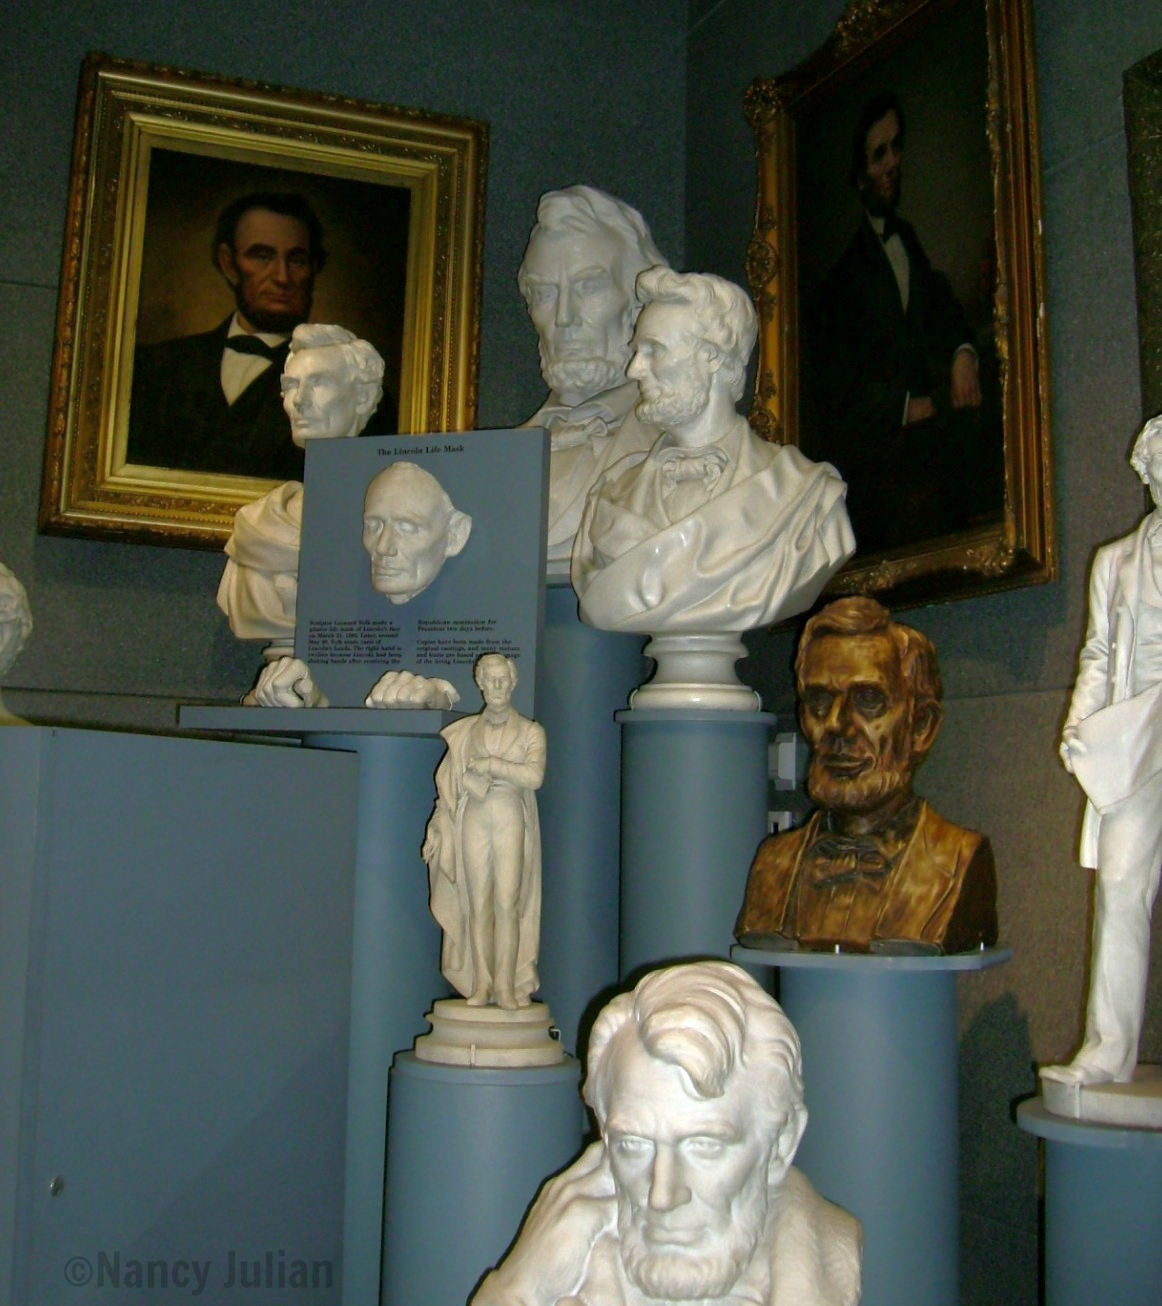 Busts and portraits of Lincoln